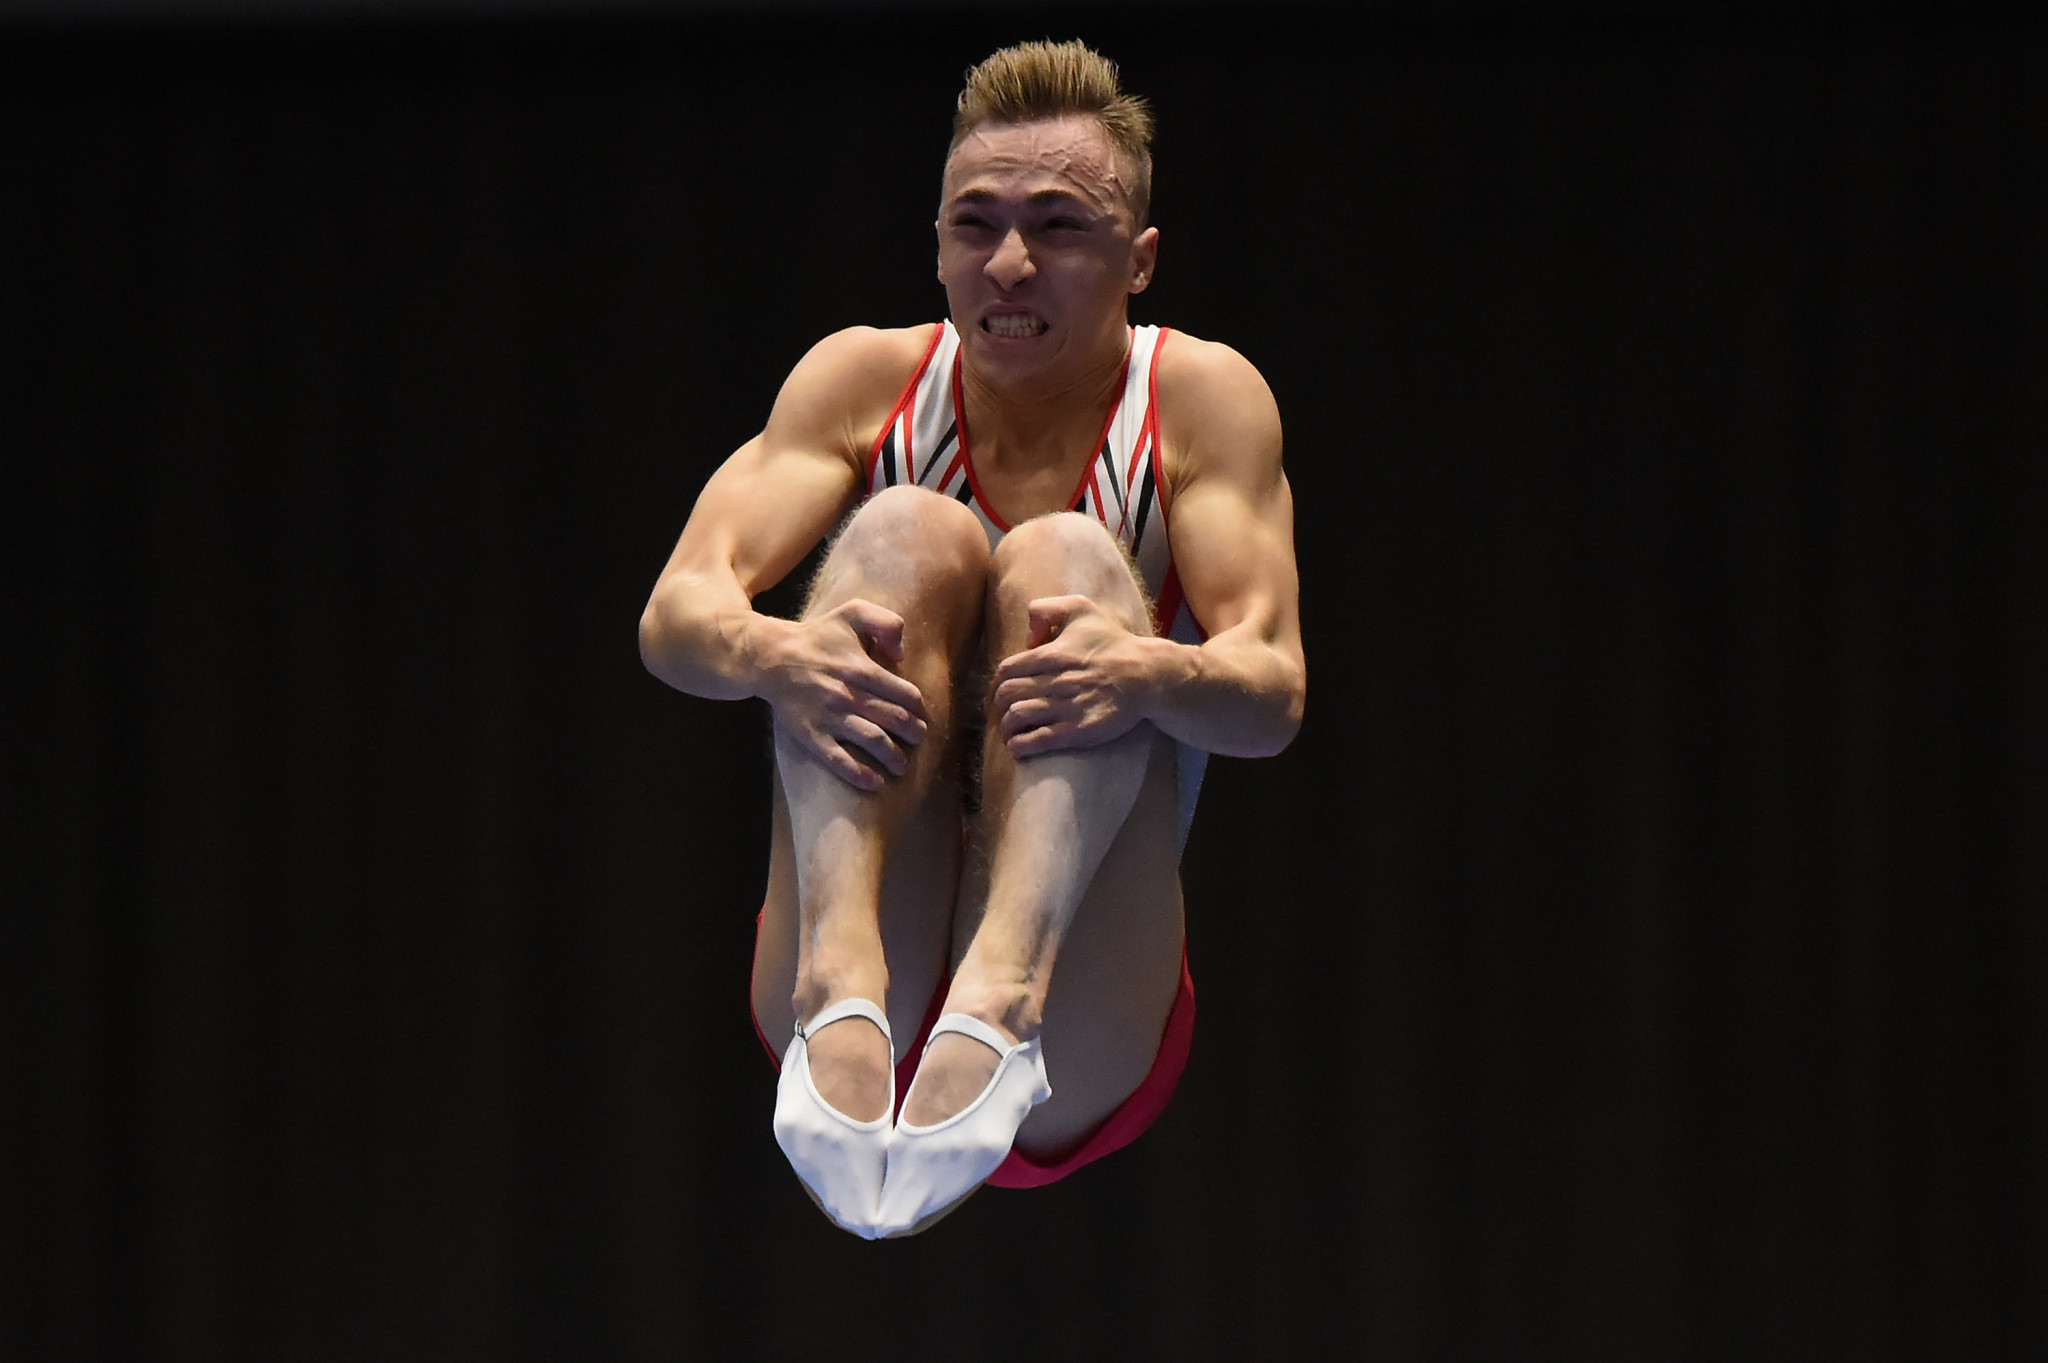 Belarus' Olympic champion Uladzislau Hancharou placed third in men's qualification ©Getty Images